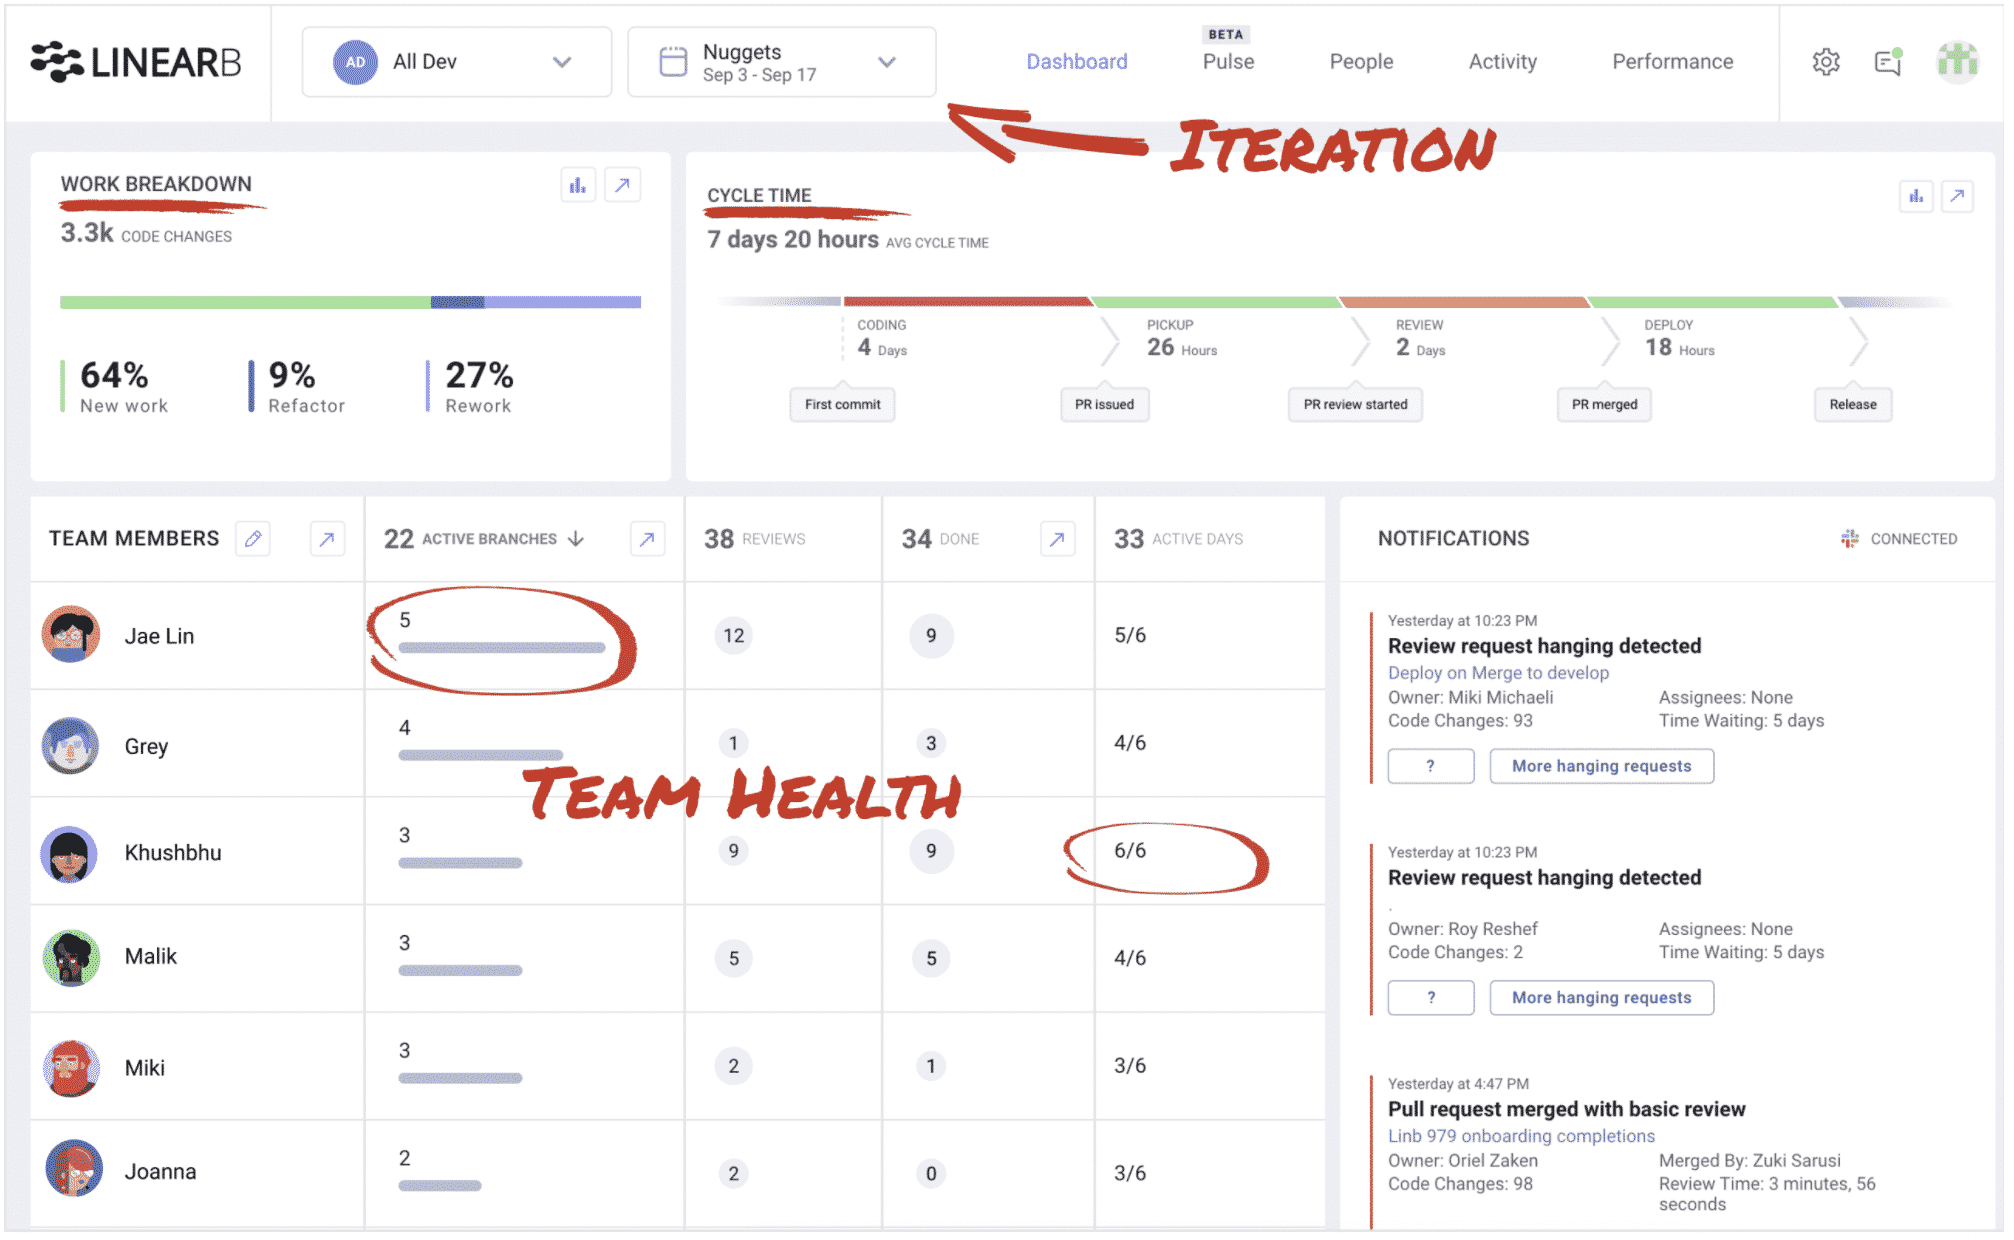 The Team Dashboard shows an overview of the iteration.